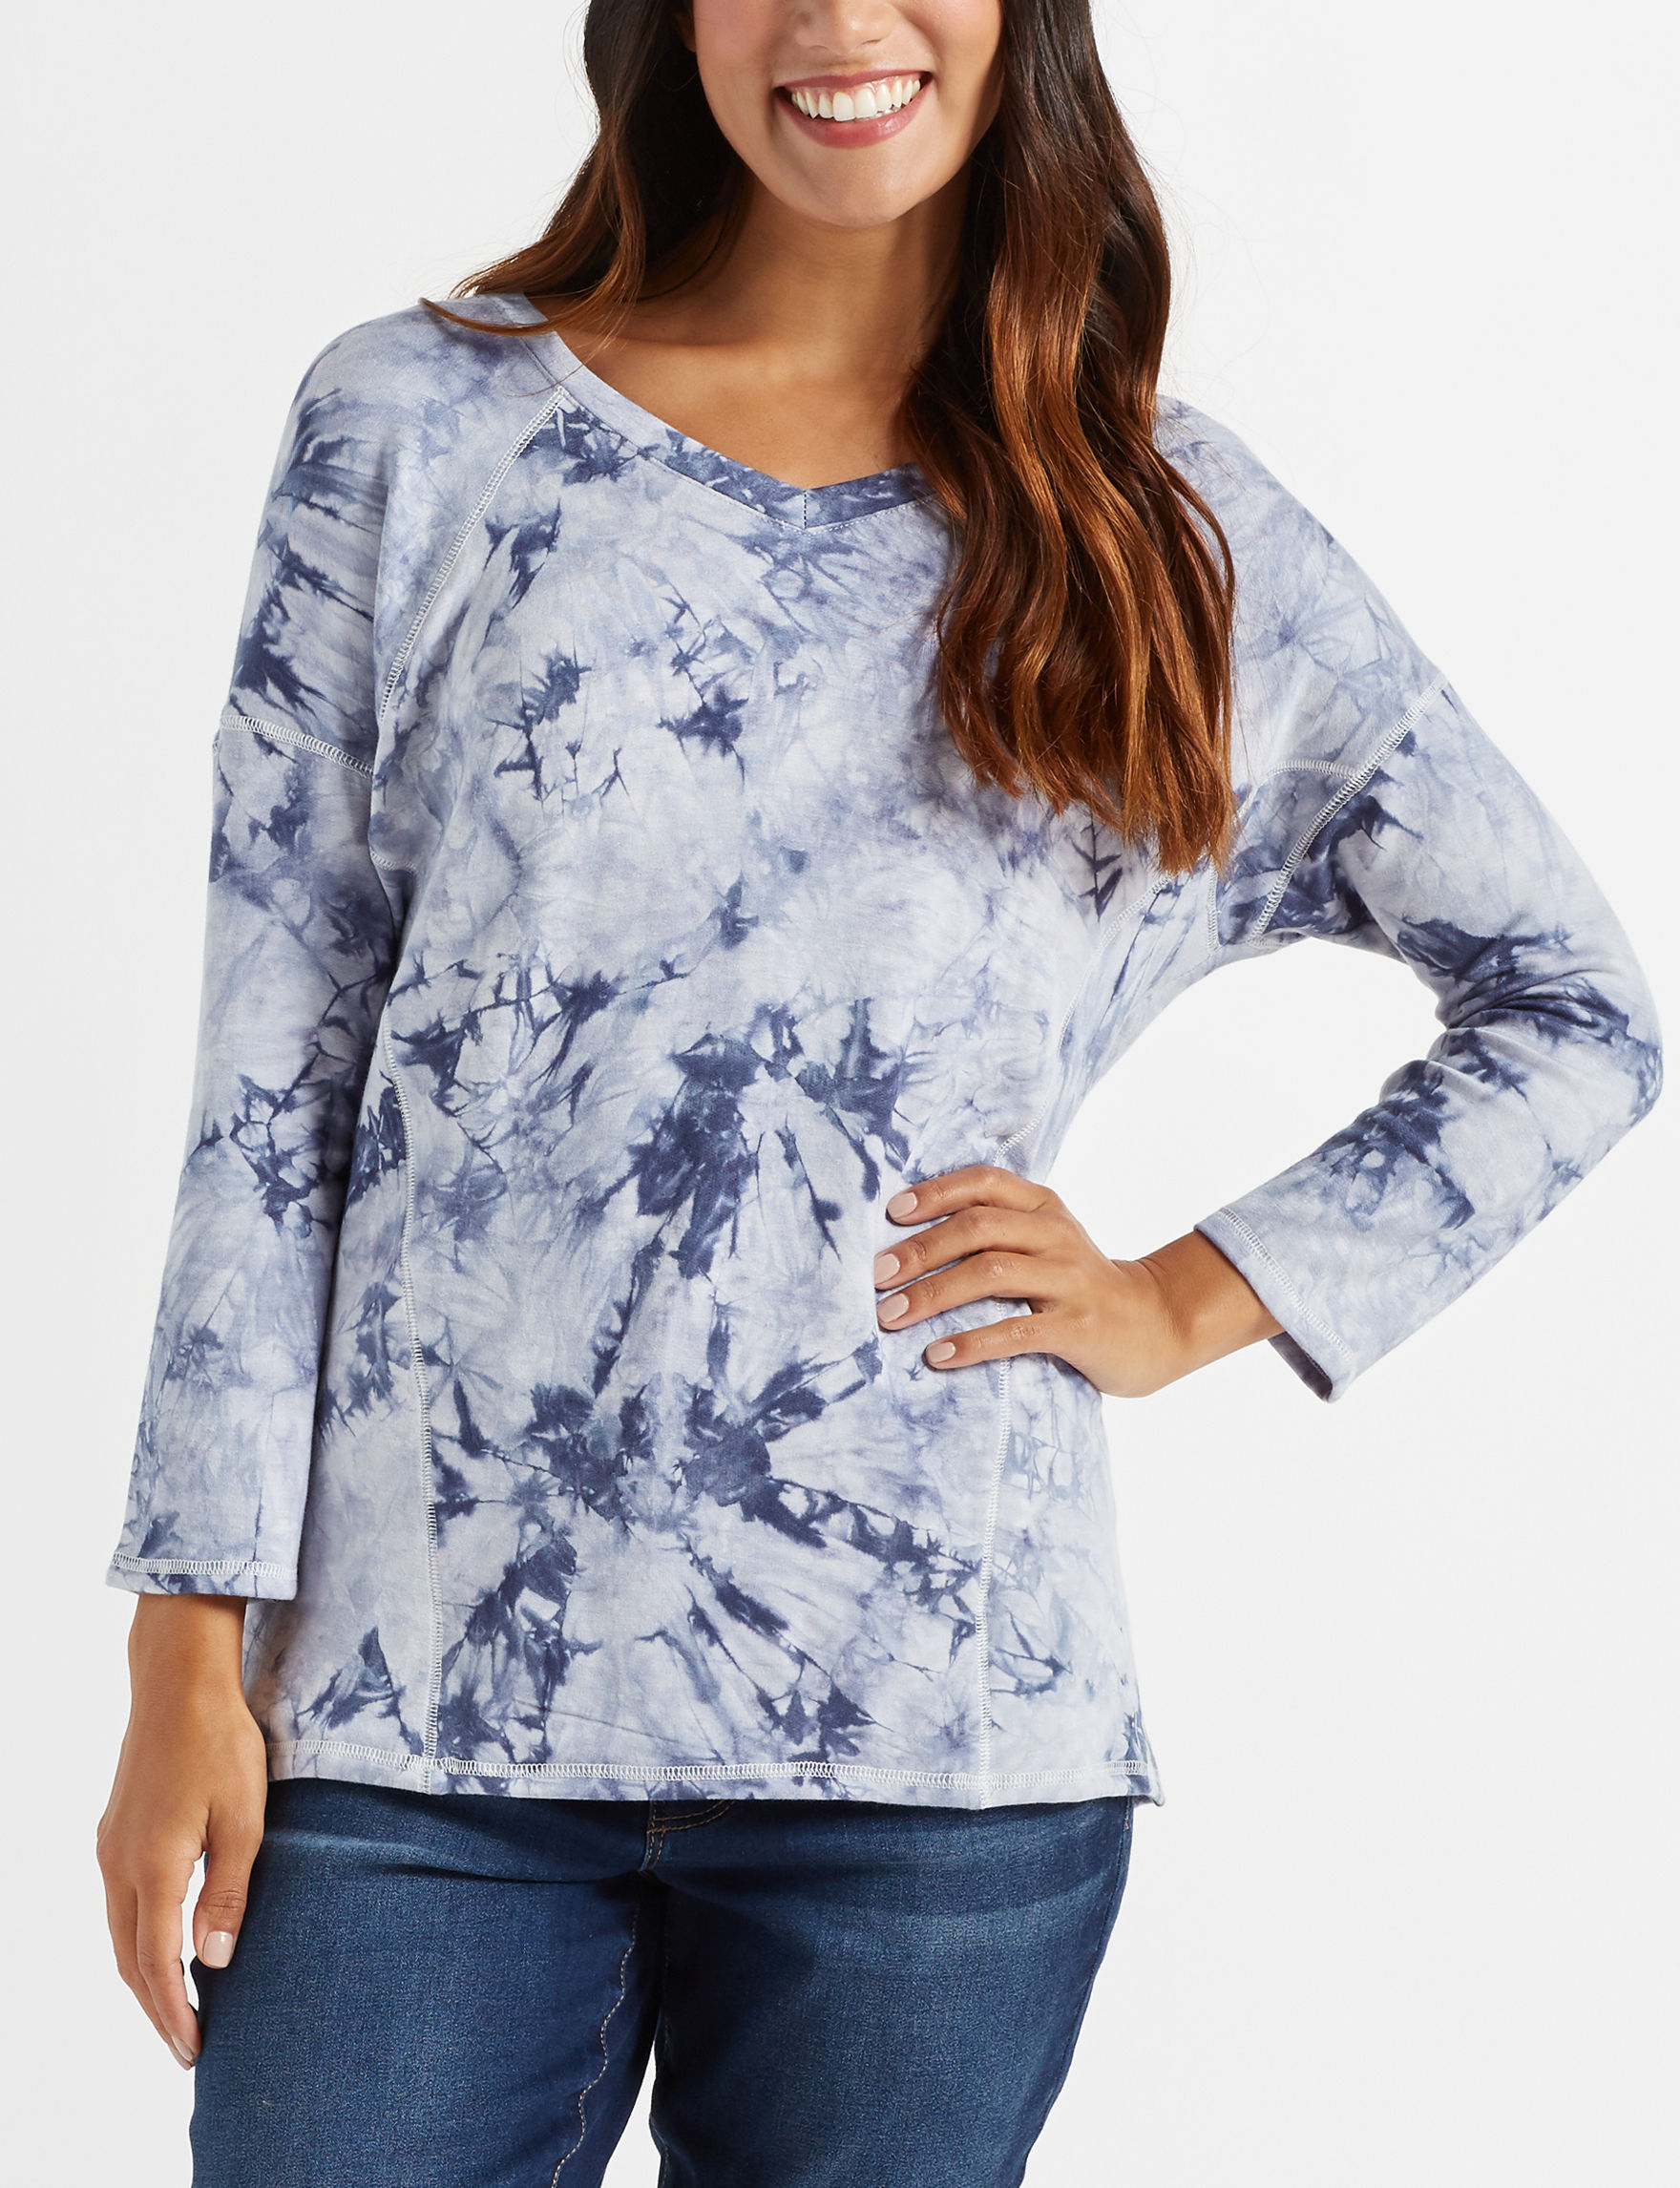 Signature Studio Blue / White Shirts & Blouses